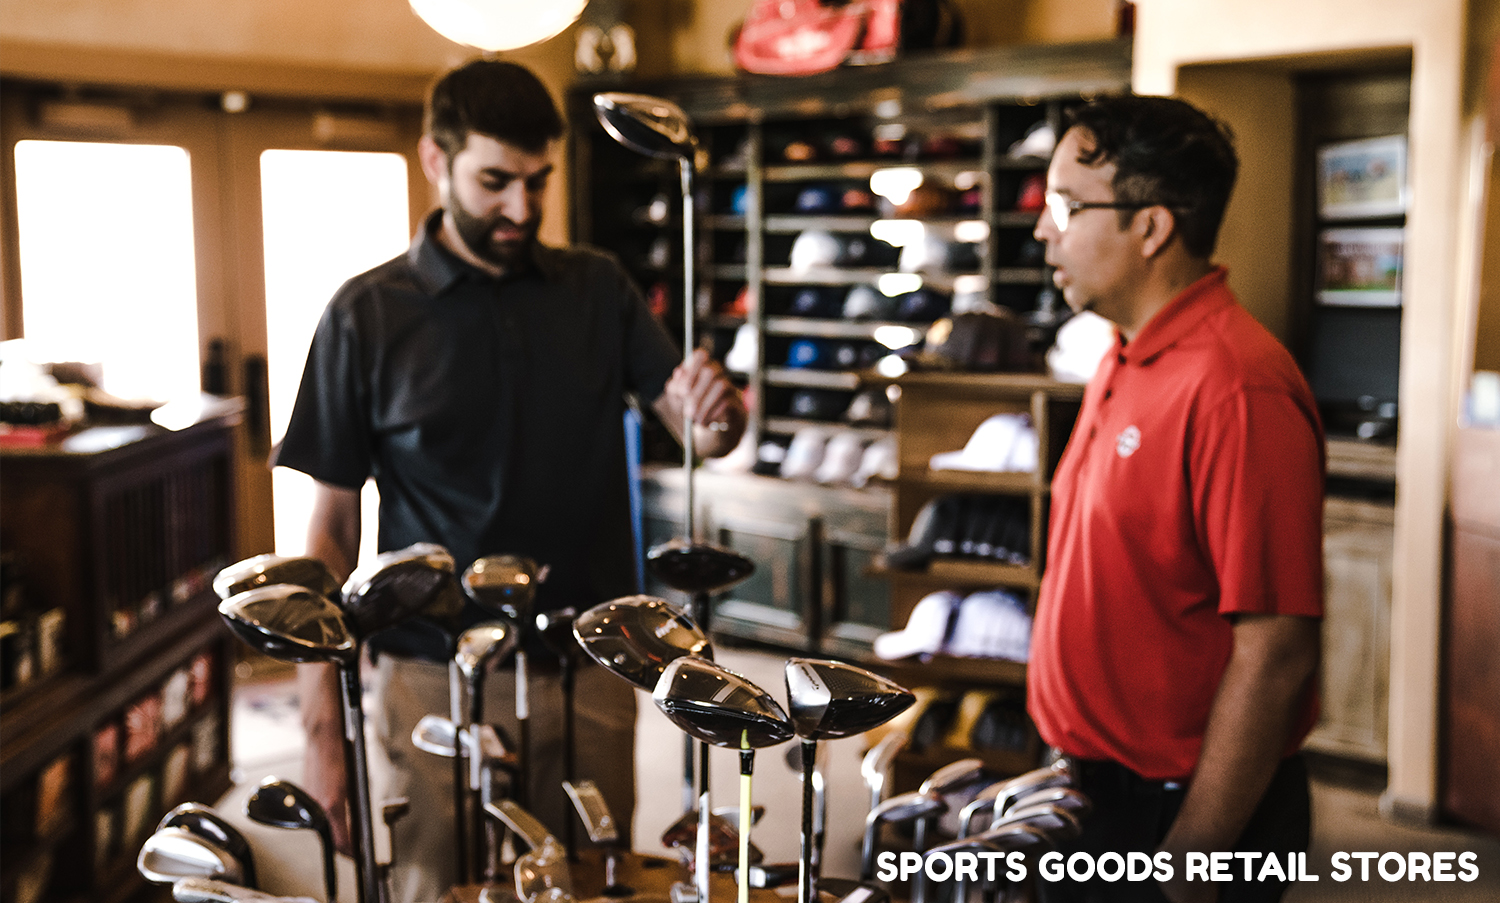 sports goods retail stores